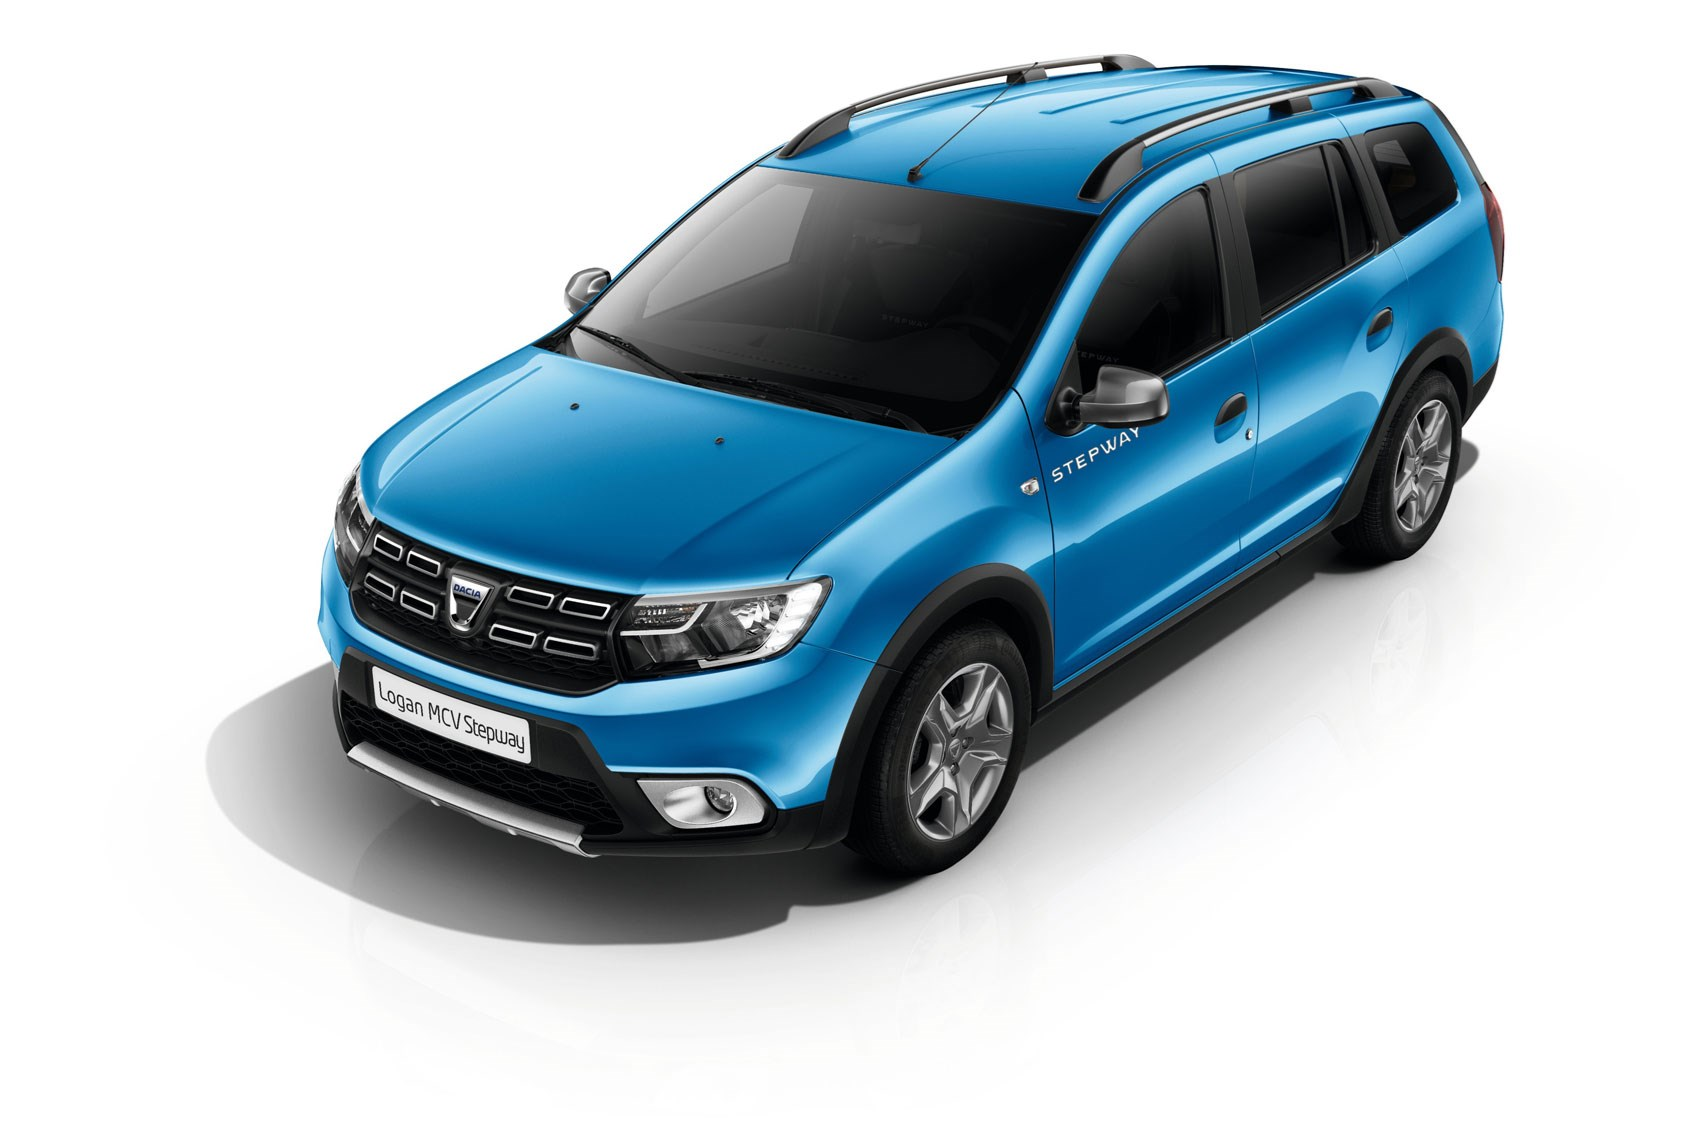 now with added chunk dacia lifts lid on logan mcv stepway. Black Bedroom Furniture Sets. Home Design Ideas